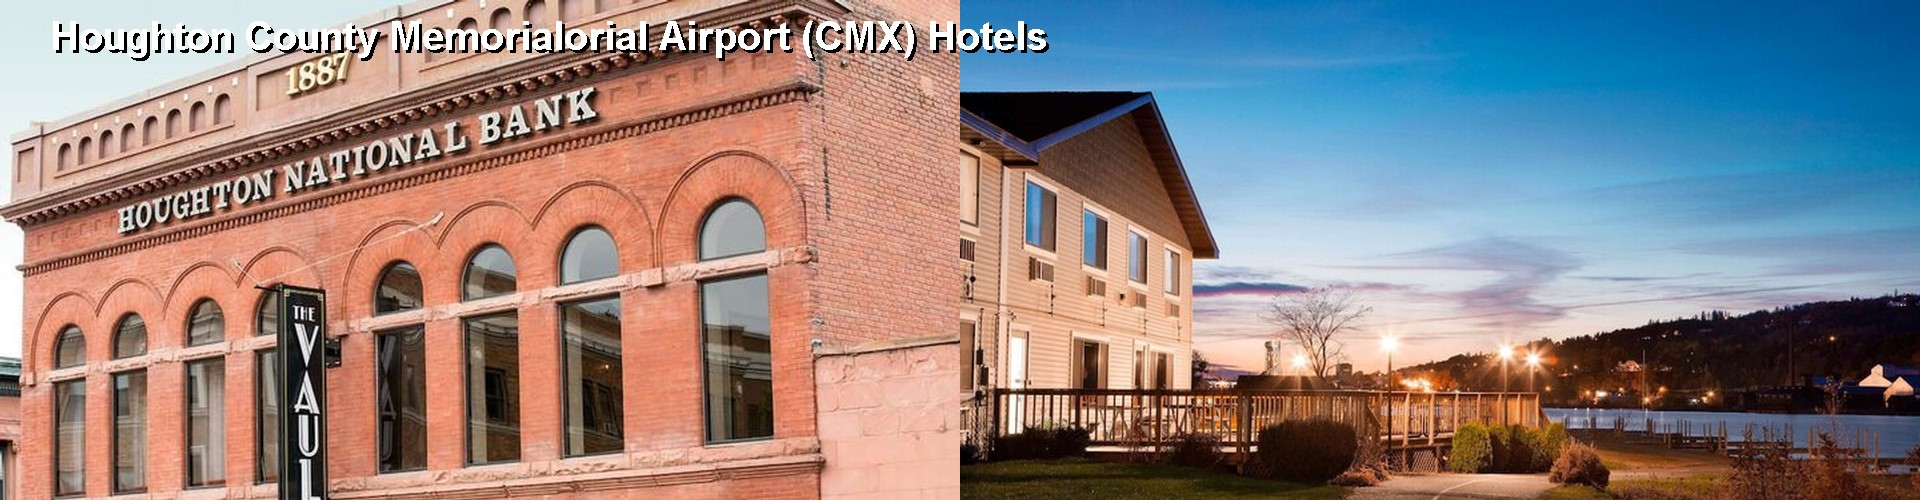 5 Best Hotels near Houghton County Memorialorial Airport (CMX)